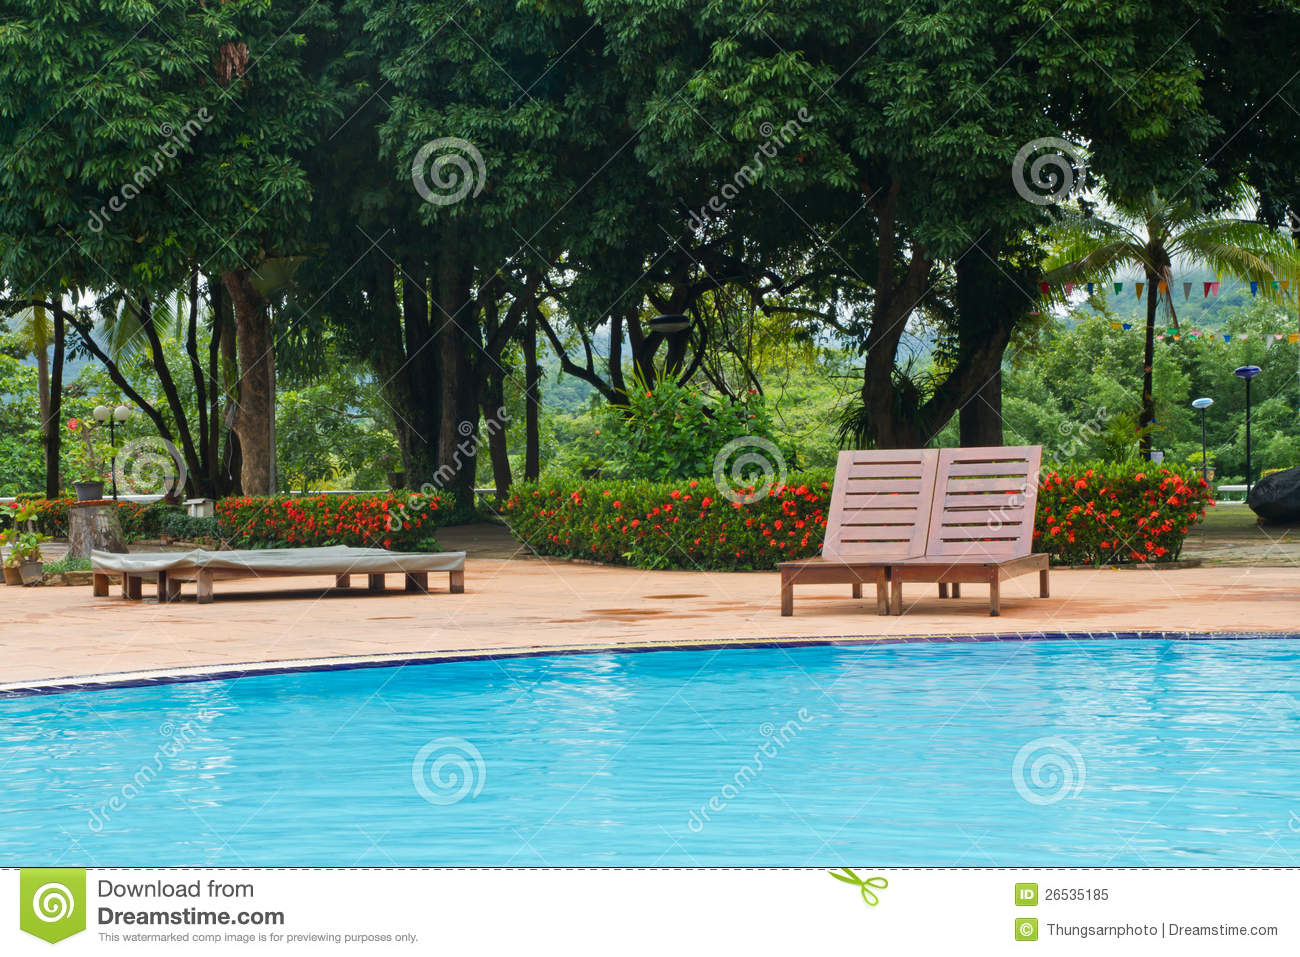 Wood chairs on pool deck